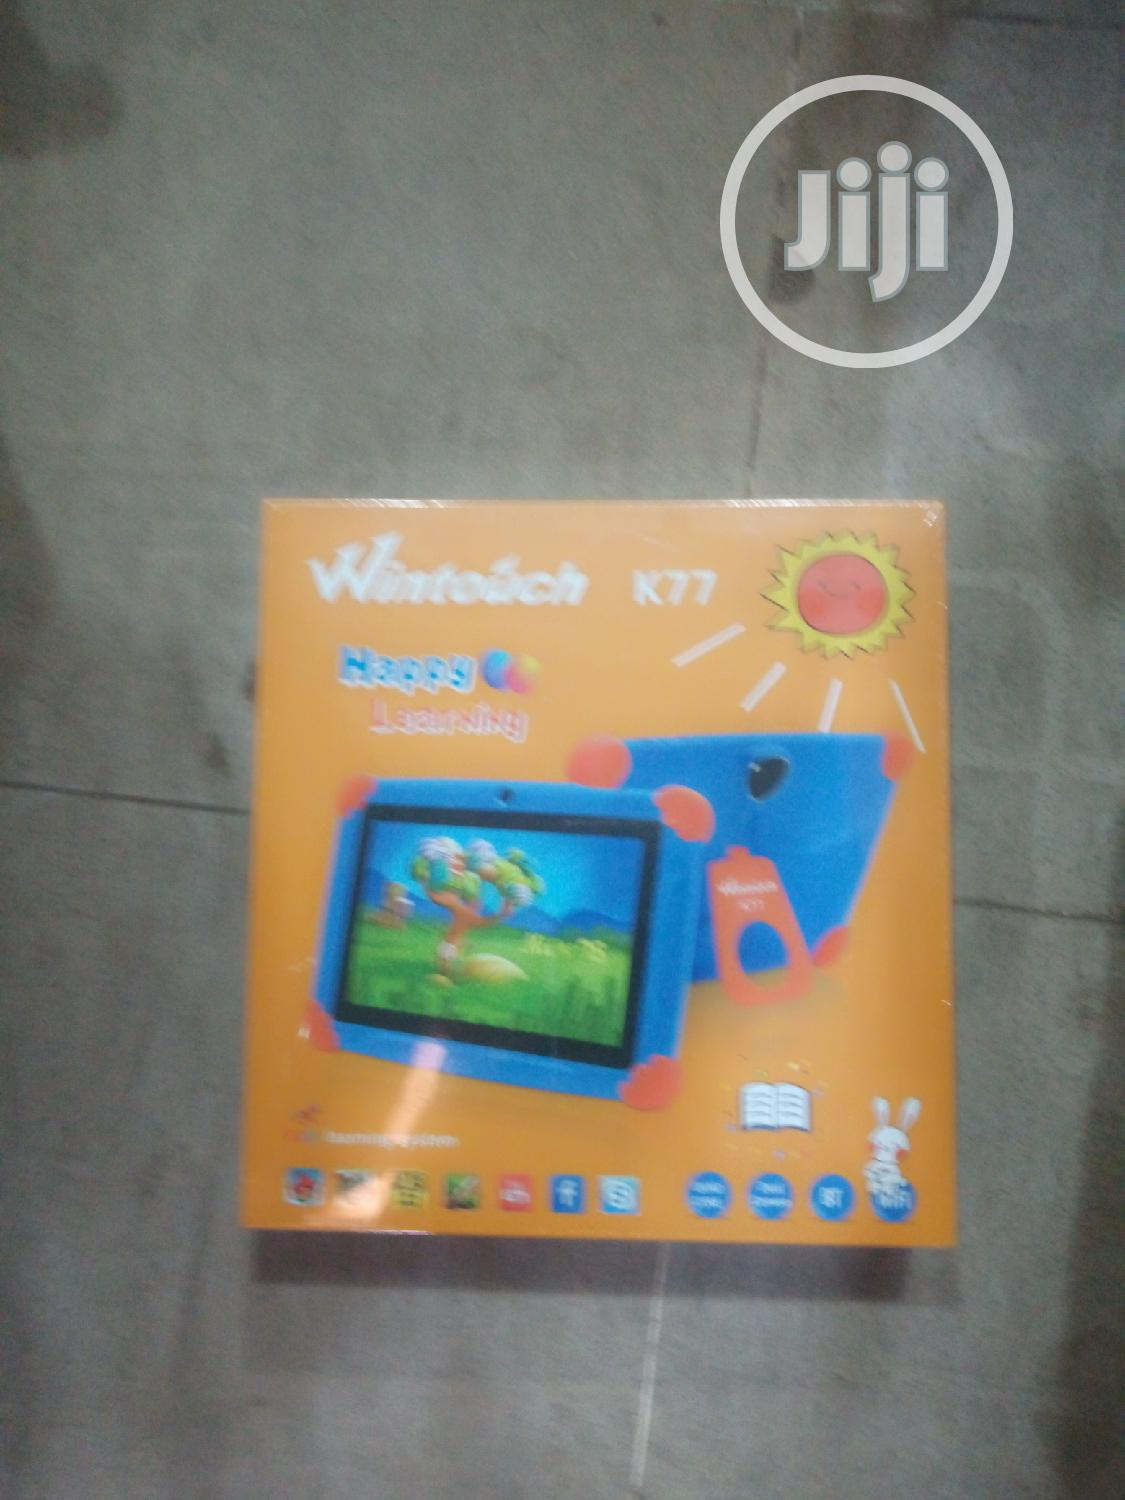 New Wintouch K77 8 GB Blue